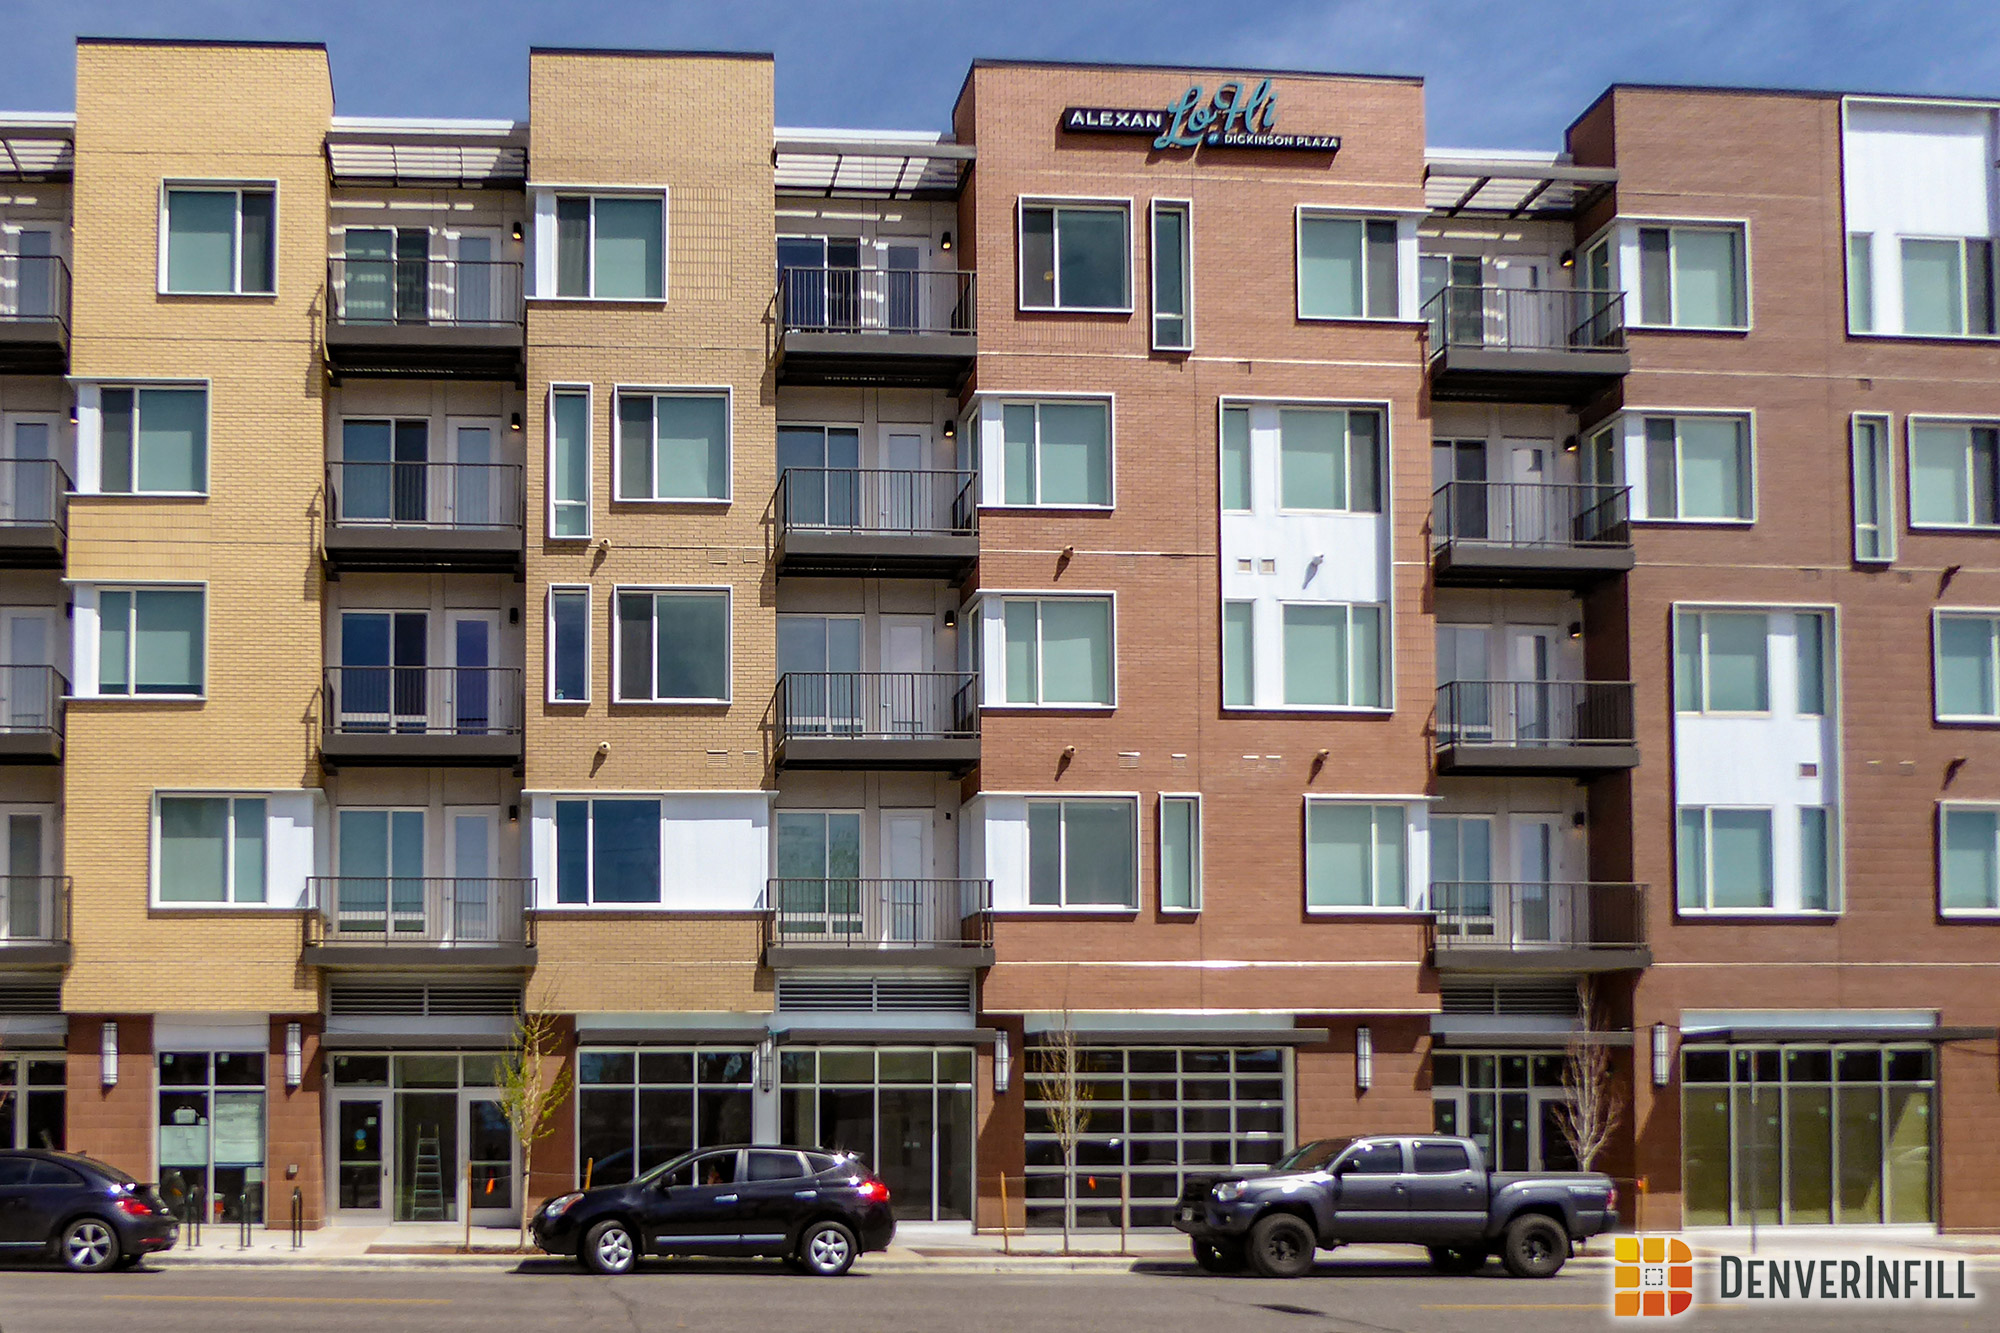 Ground-floor commercial spaces along W. 32nd Avenue at Alexan LoHi